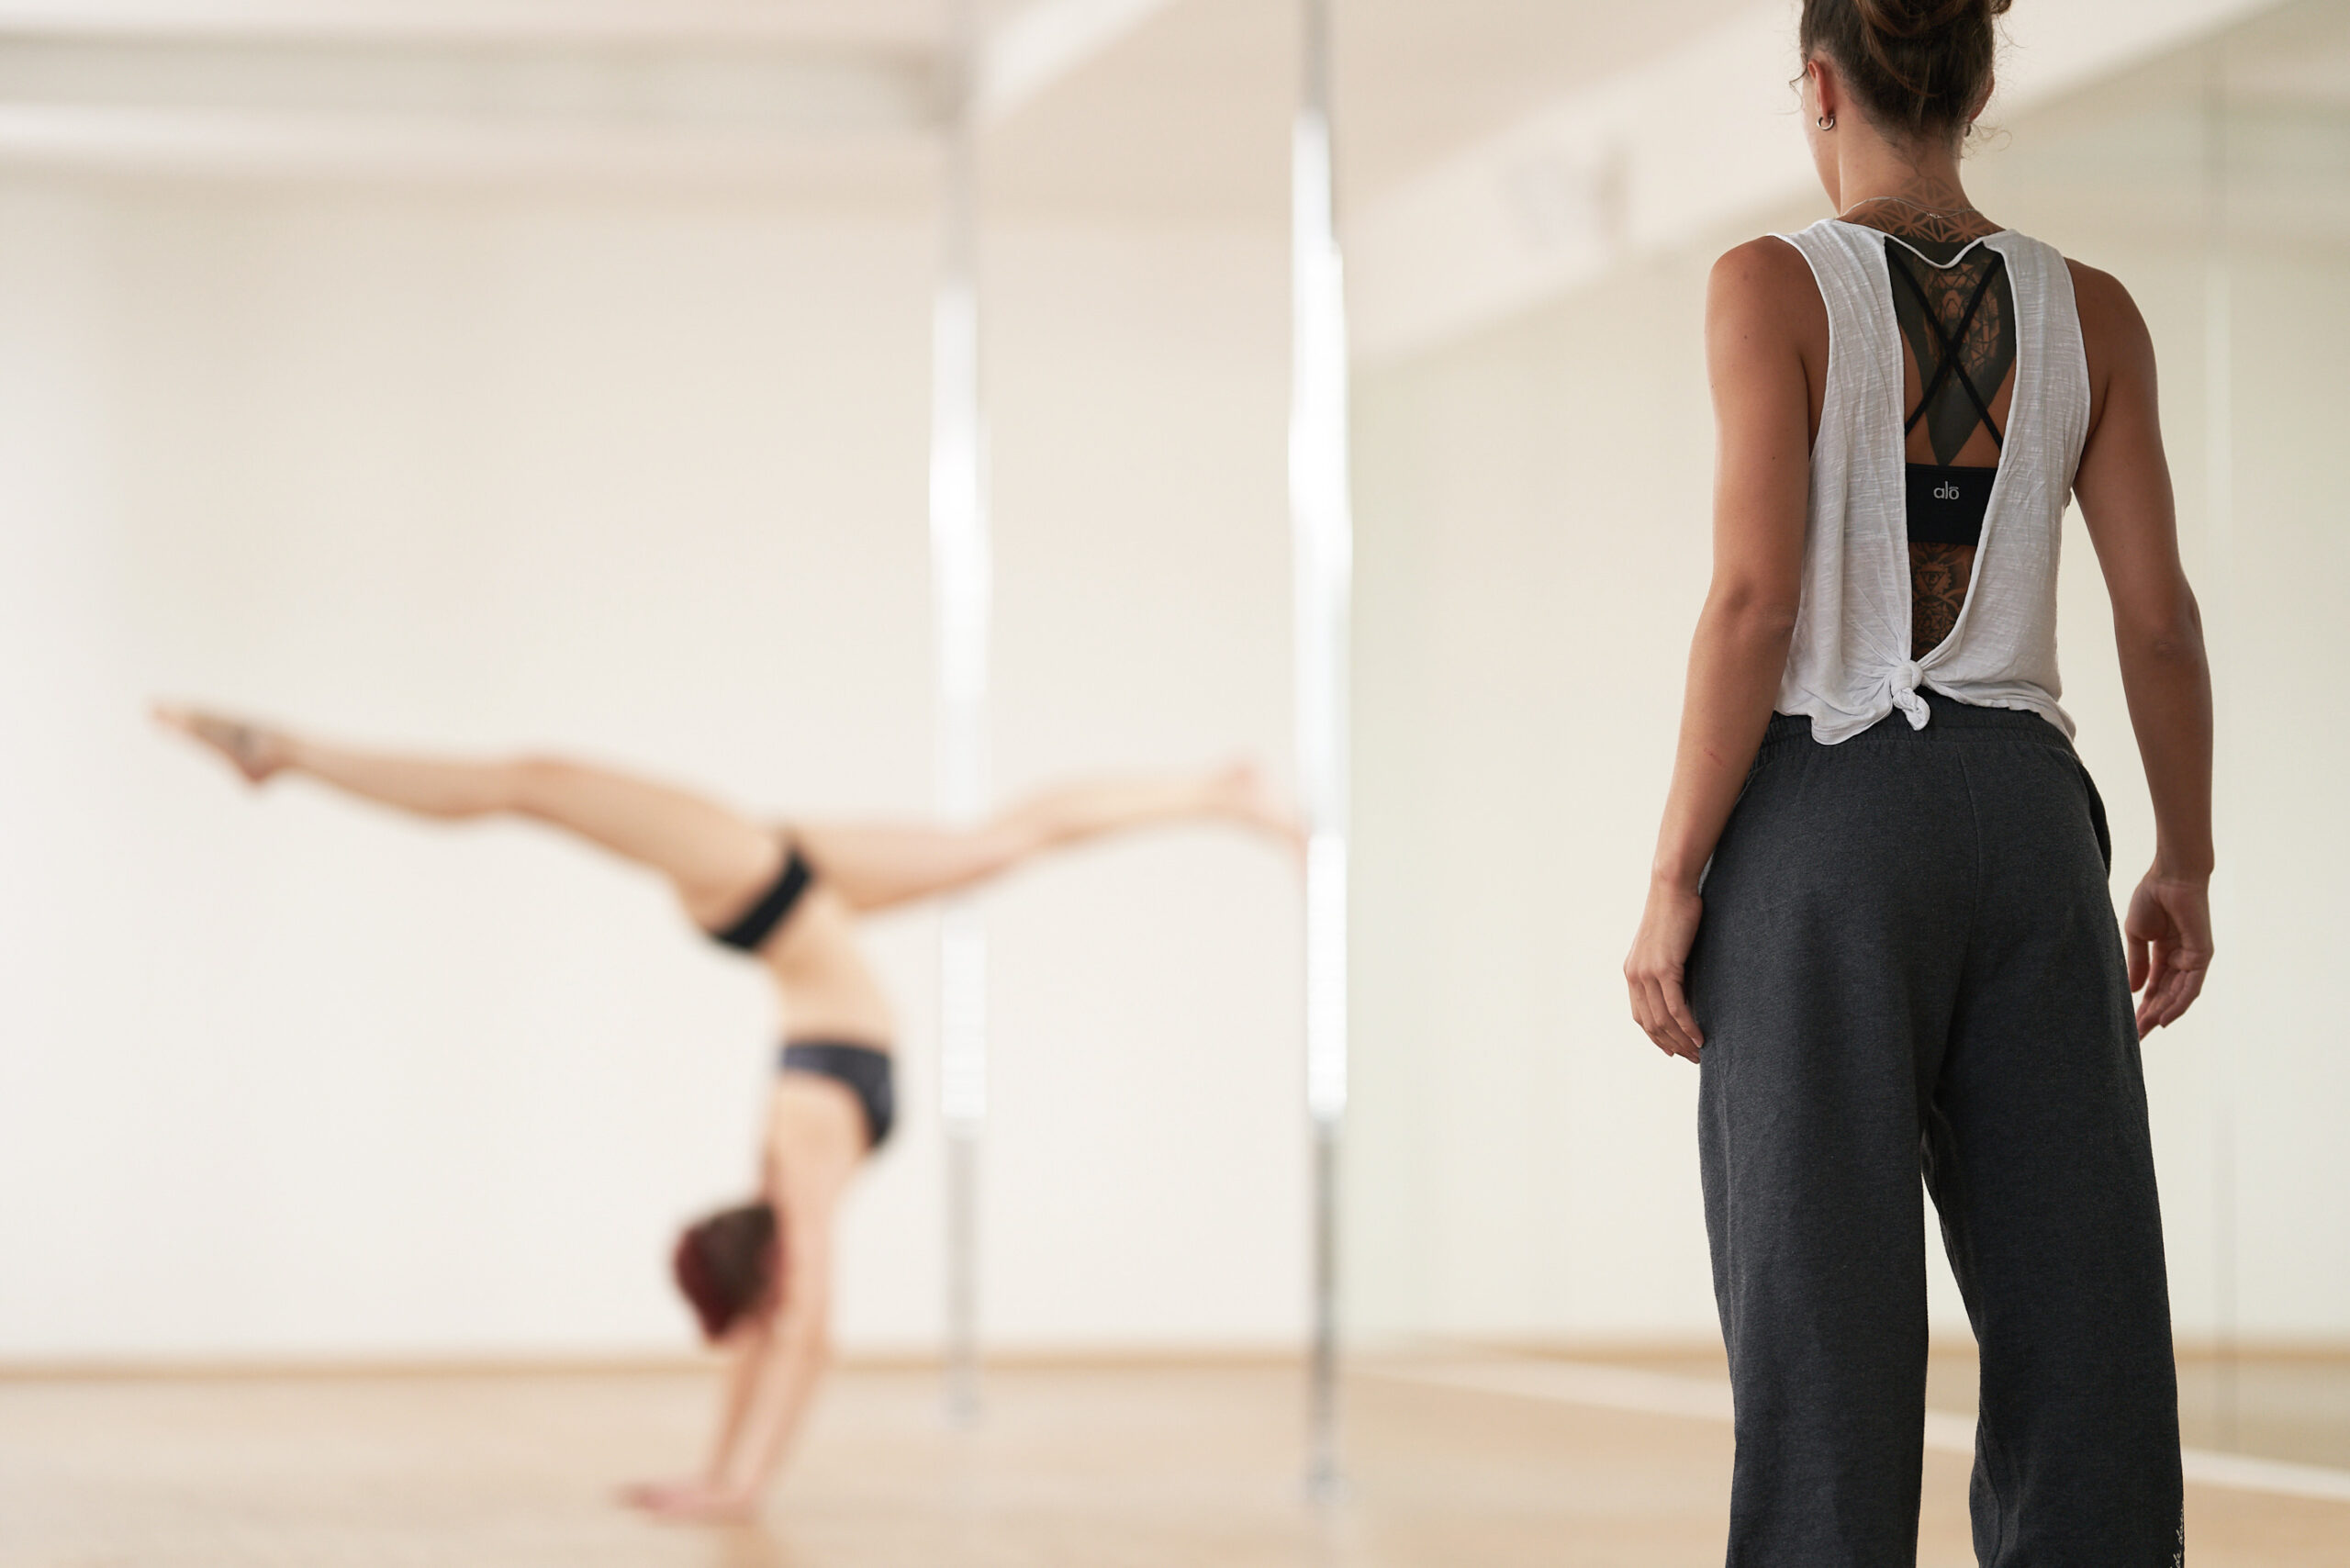 munich-poledance-personal-training-privatstunden